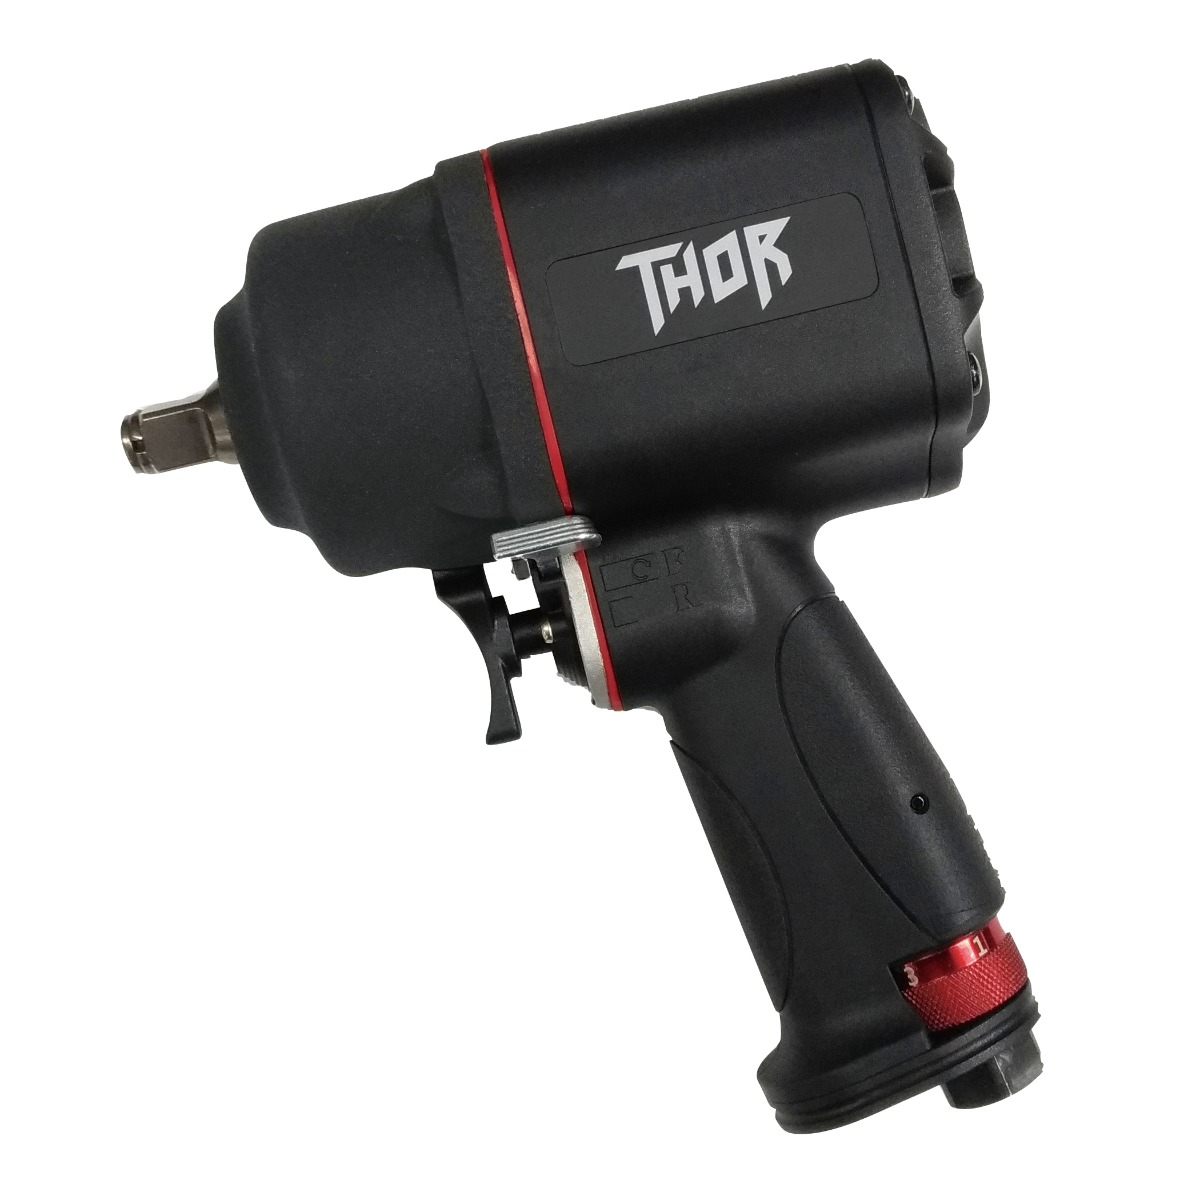 Astro Tools THOR ONX Impact Wrench